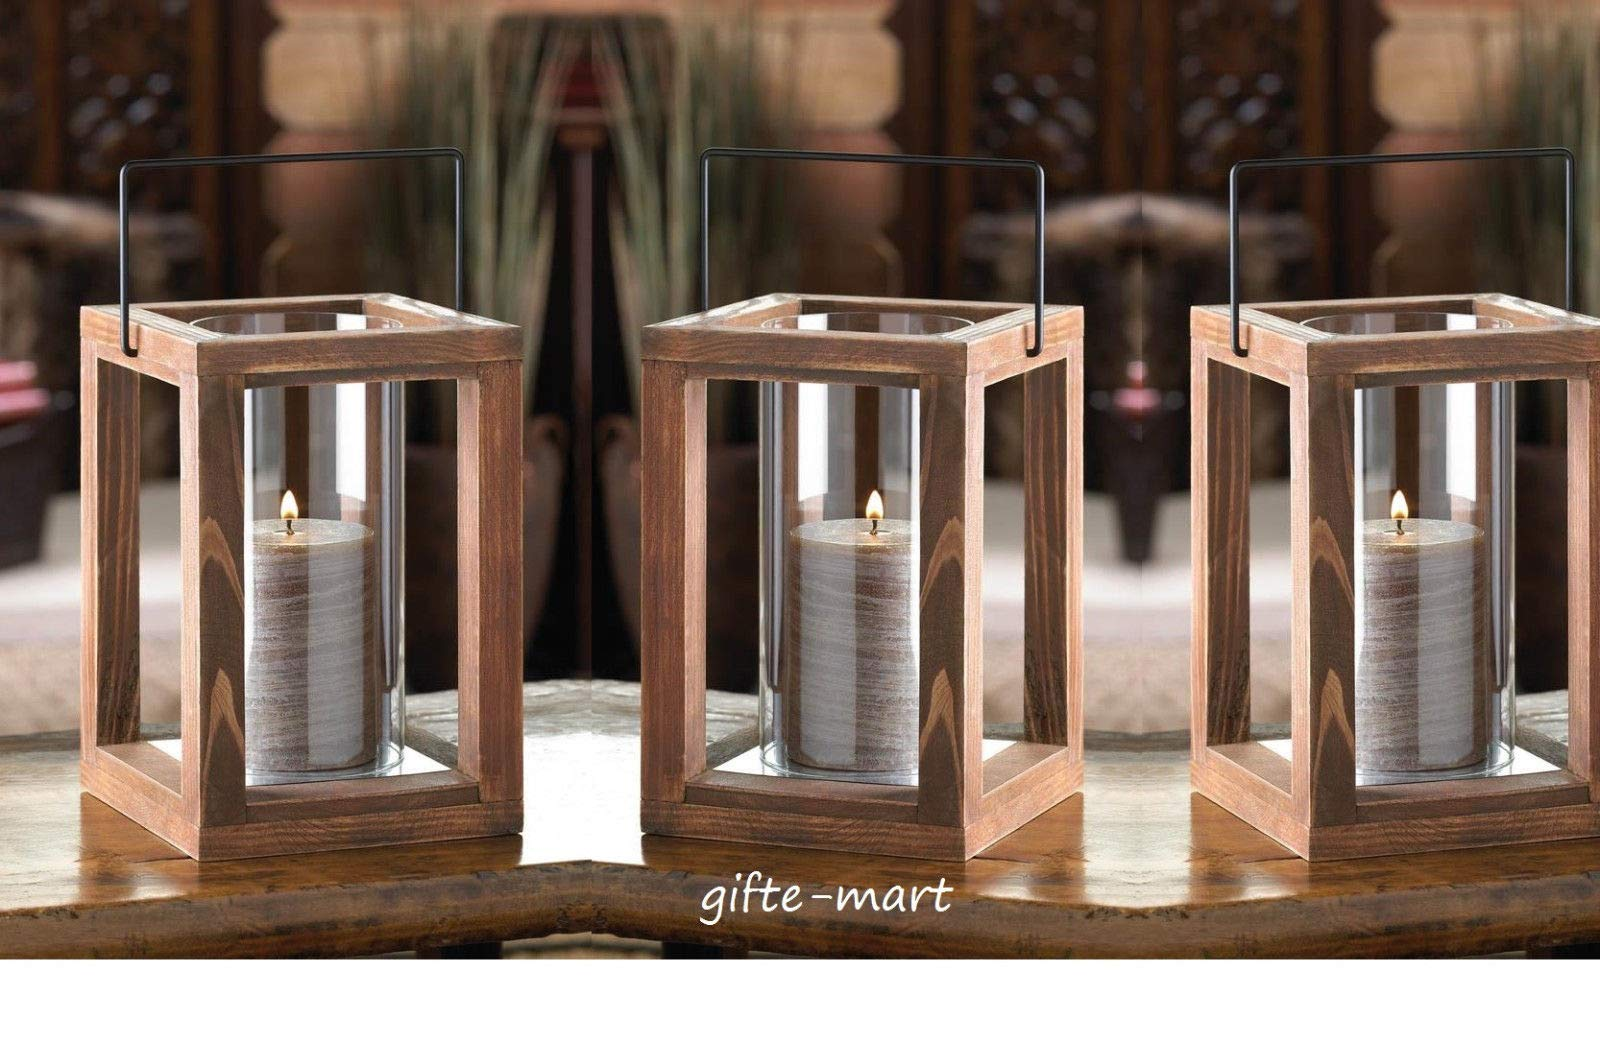 5 Brown Wood Hurricane Pillar Candle Holder Lantern Wedding Table Decoration Decorative Centerpieces for Living Dinning Room Table Decoration, Wedding Gifts